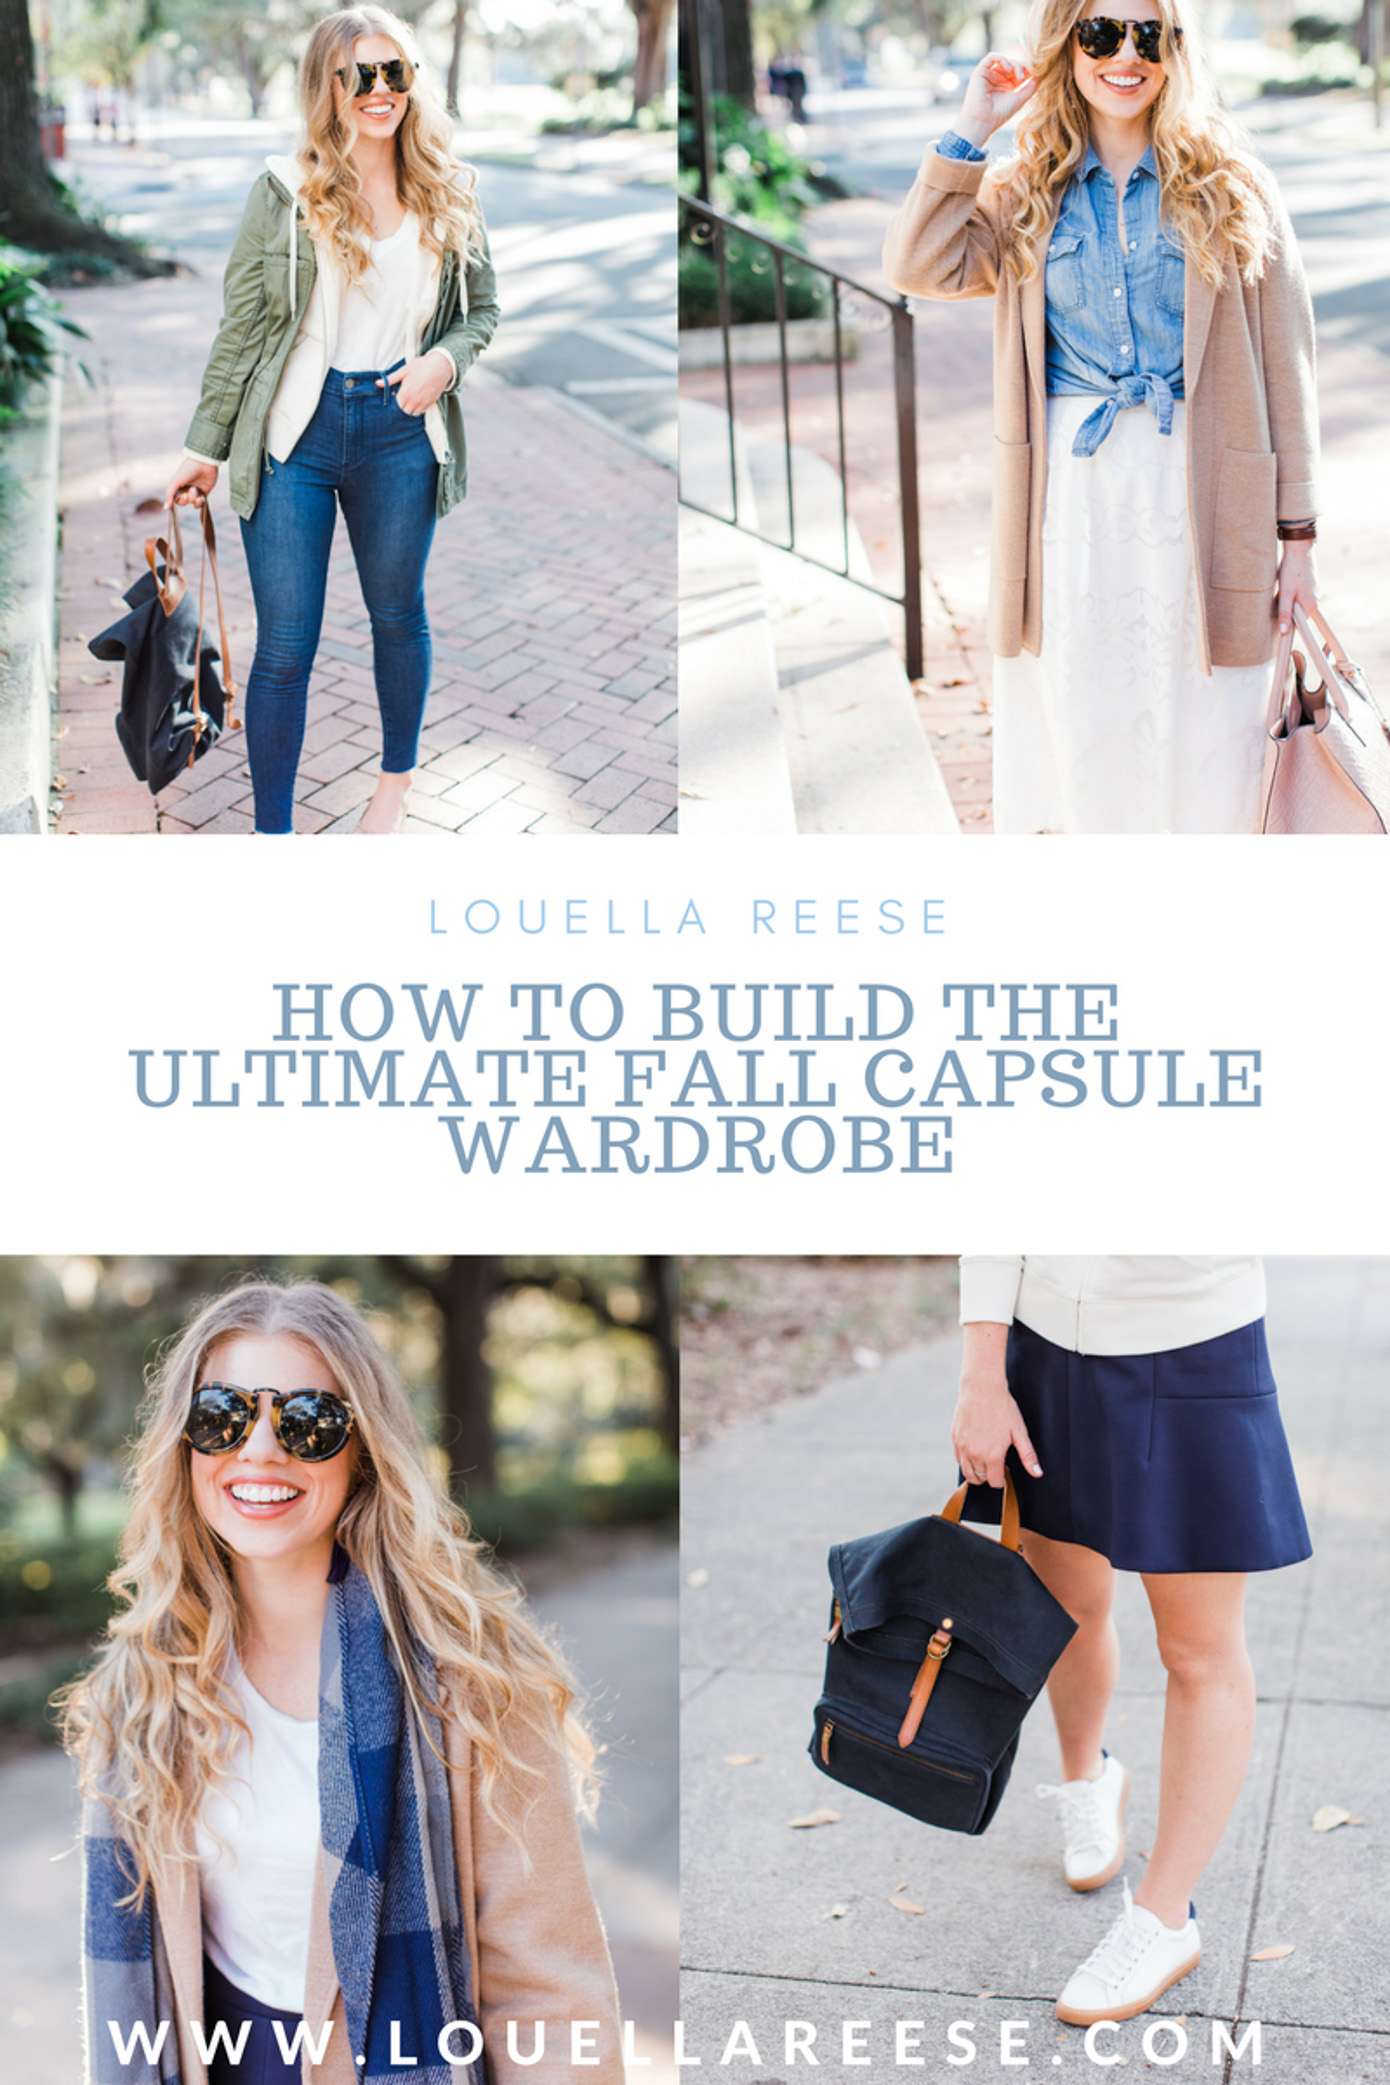 How to Build a Fall Capsule Wardrobe | Capsule Collection Tips | Louella Reese Life & Style Blog